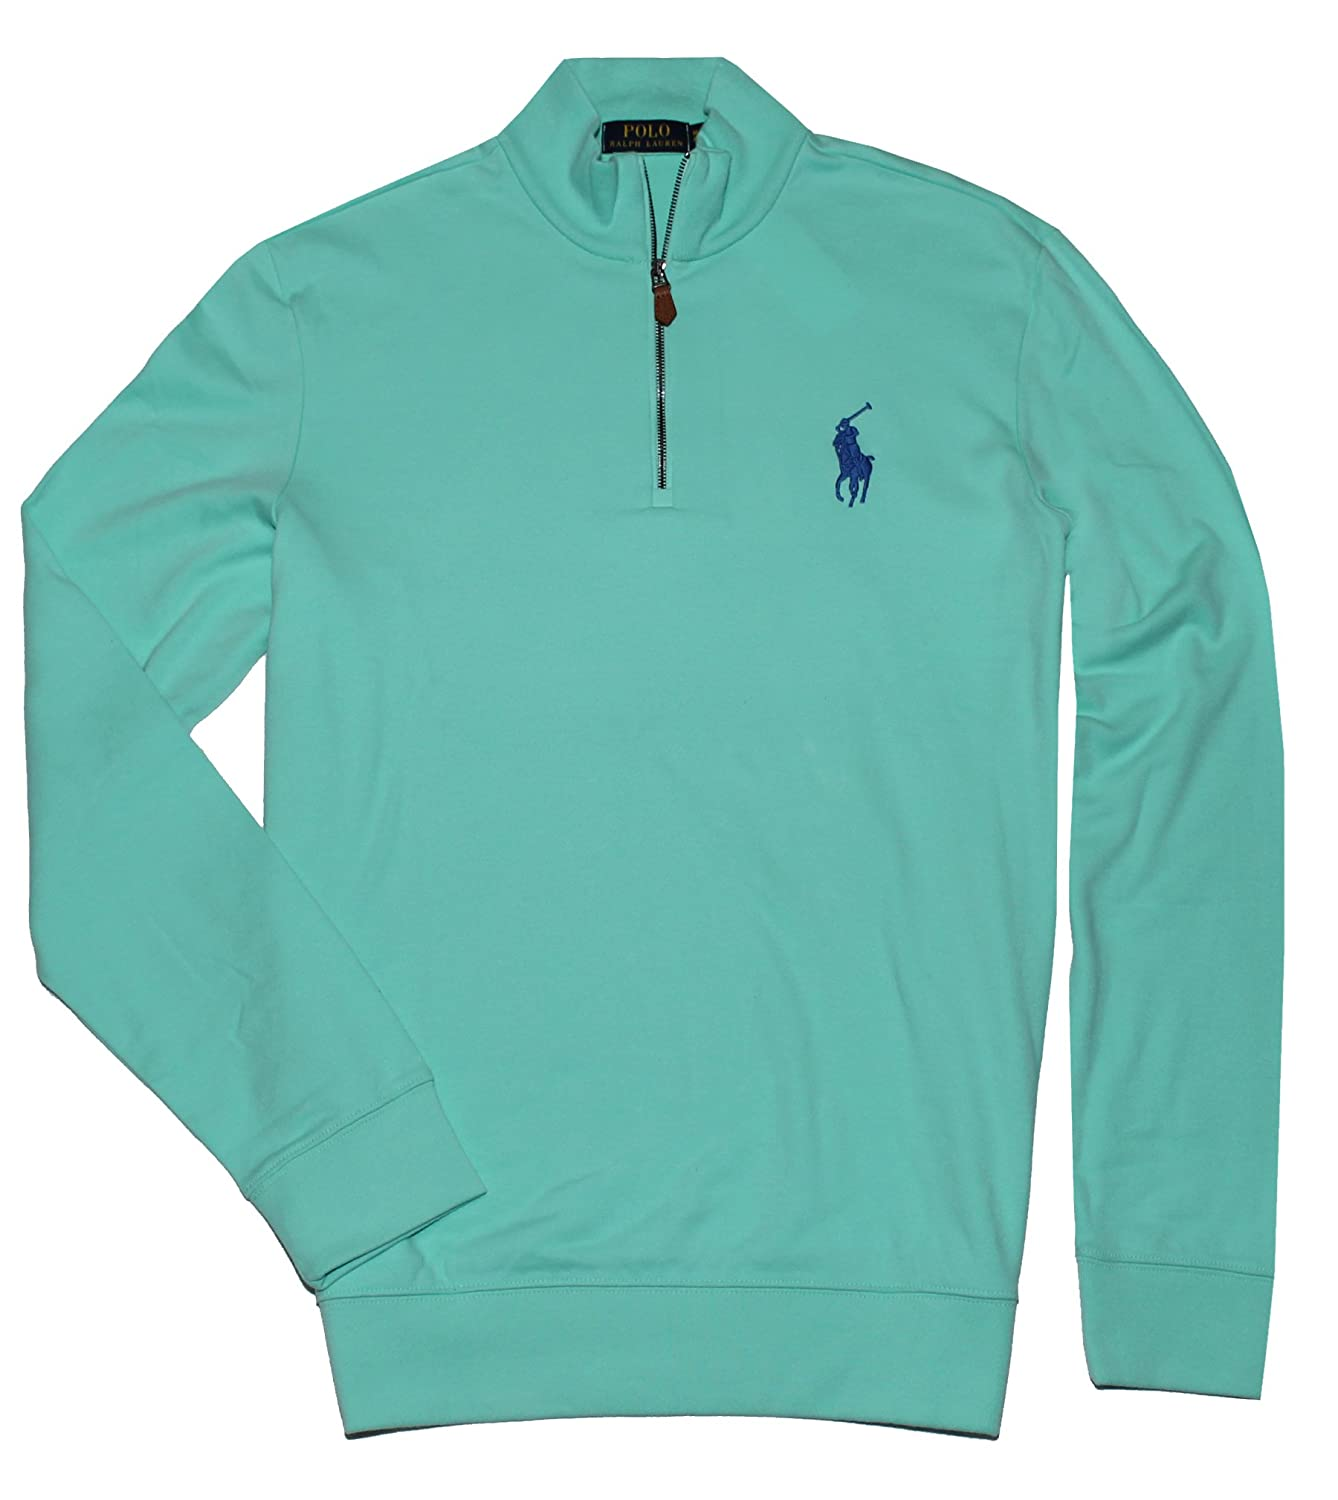 Polo Ralph Lauren Mens Big Pony Half Zip Pullover Sweatshirt 30%OFF ... bd9046bf0d